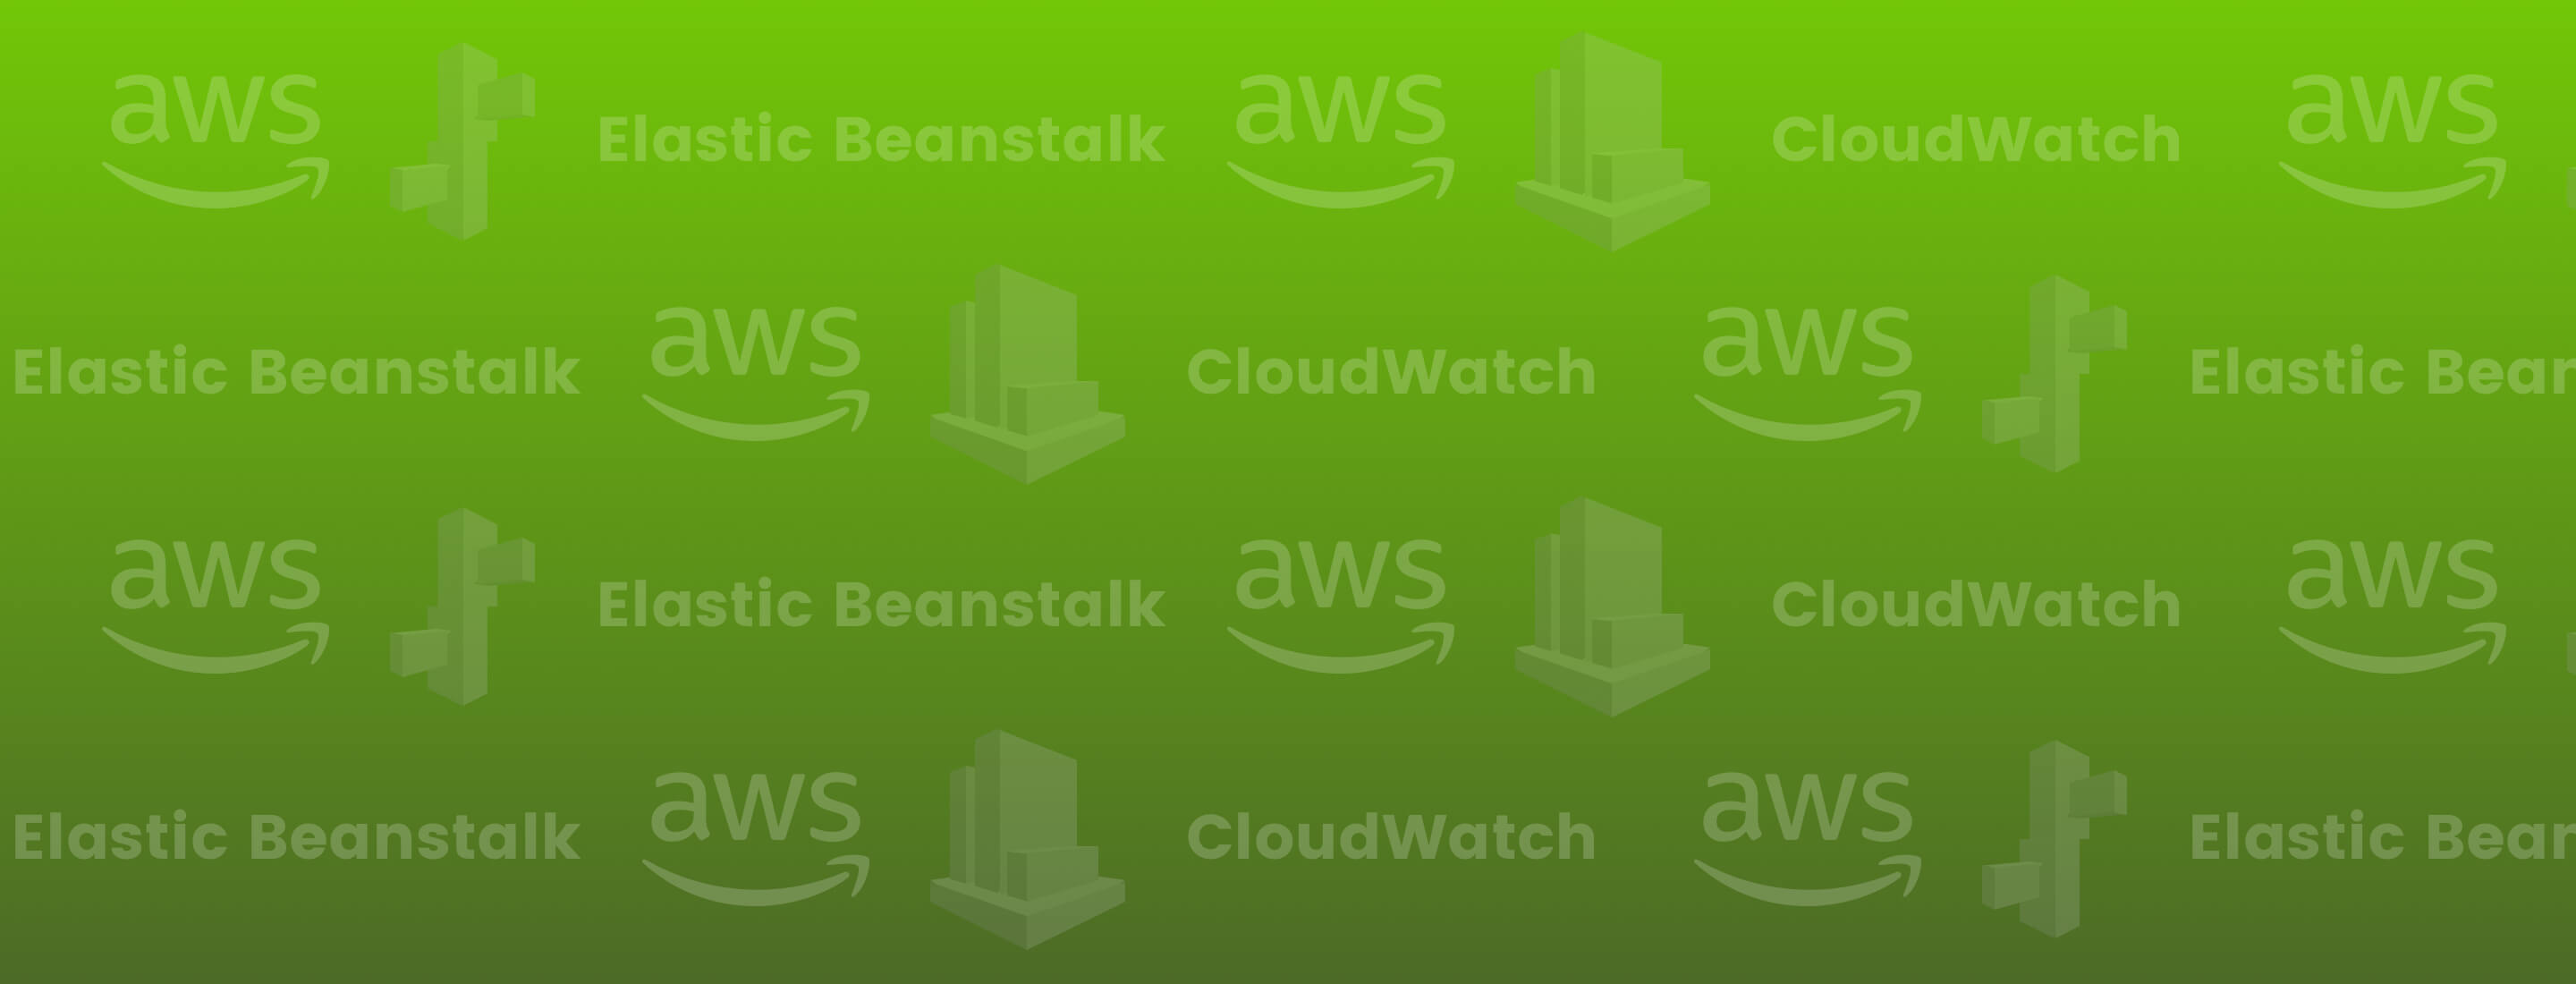 How to Monitor AWS Elastic Beanstalk with CloudWatch